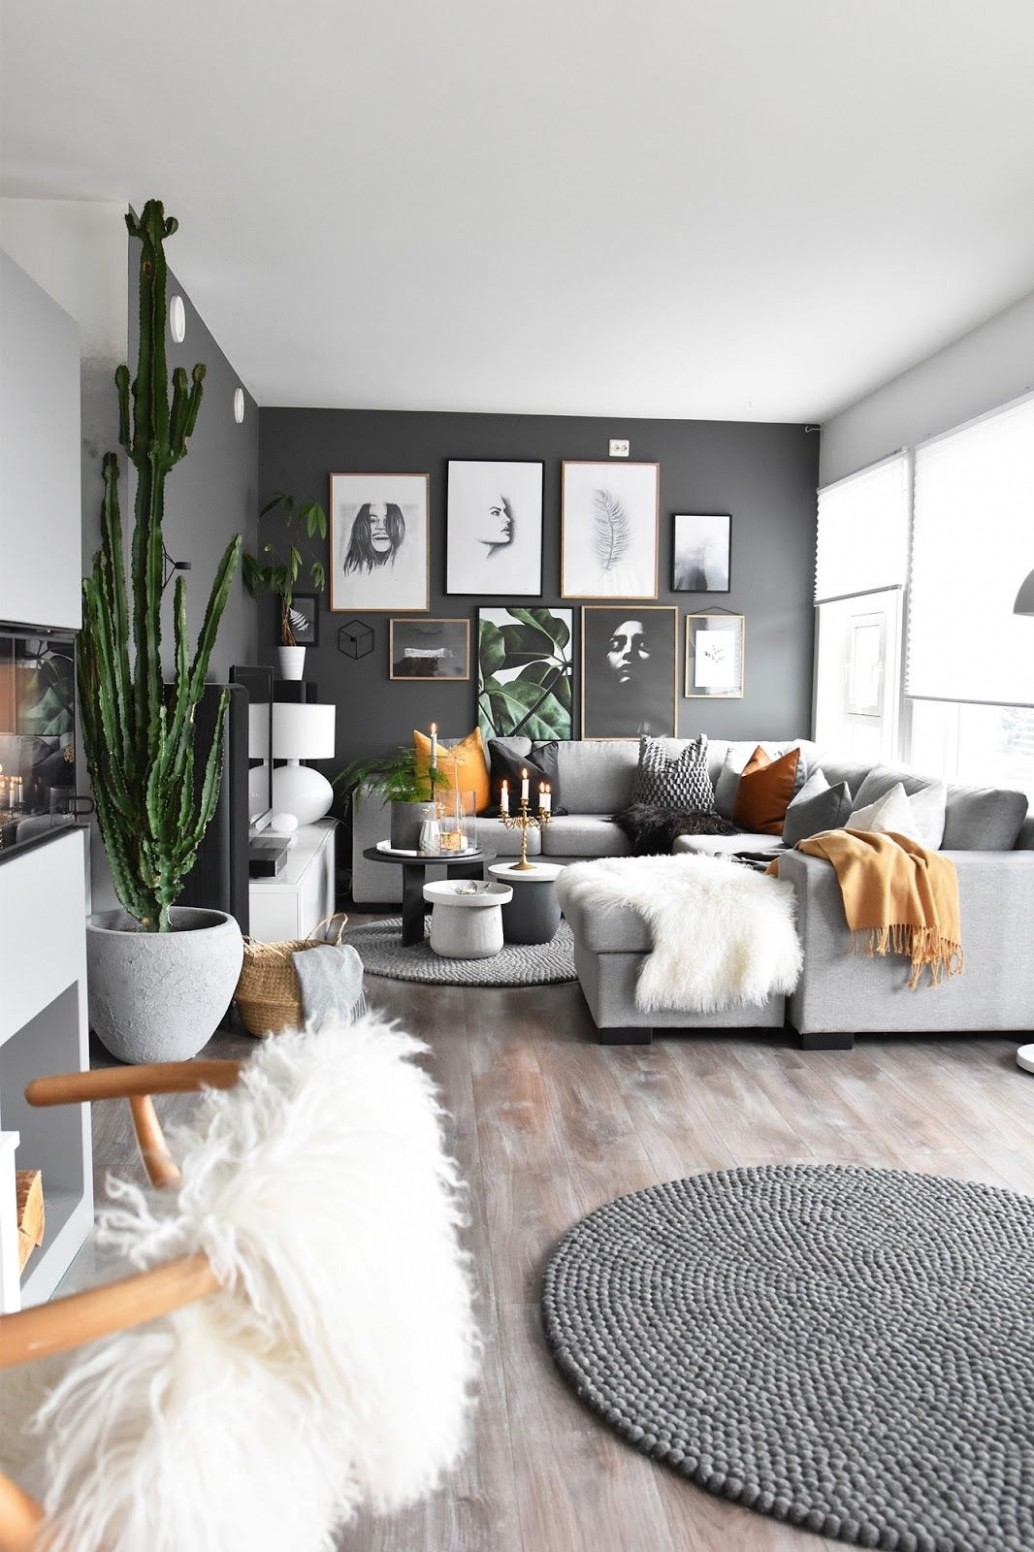 Pinterest // @JusLiv  College apartment decor, Apartment  - Apartment Design Ideas Pinterest